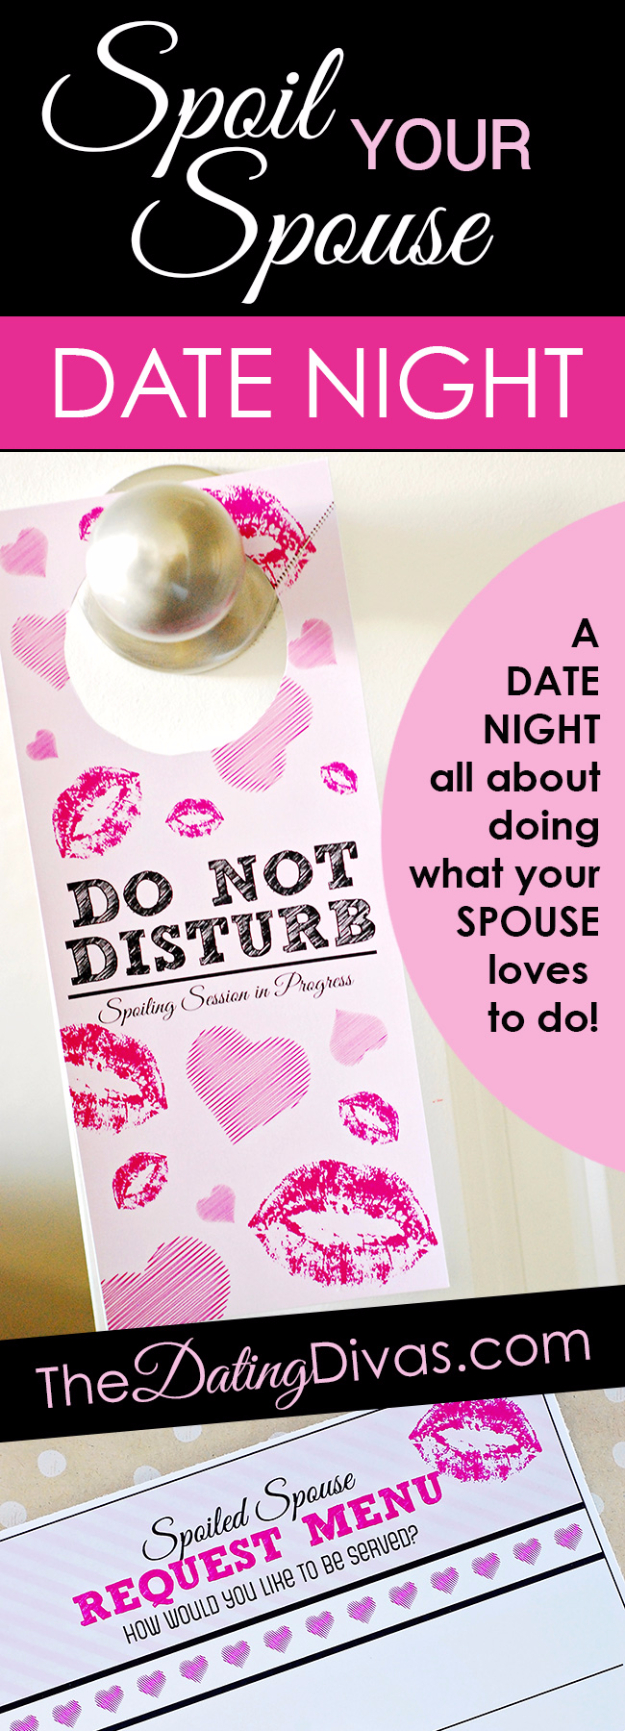 DIY Date Night Ideas - Spoil Your Spouse Date Night - Creative Ways to Go On Inexpensive Dates - Creative Ways for Couples to Spend Time Together creative date nights diy idea